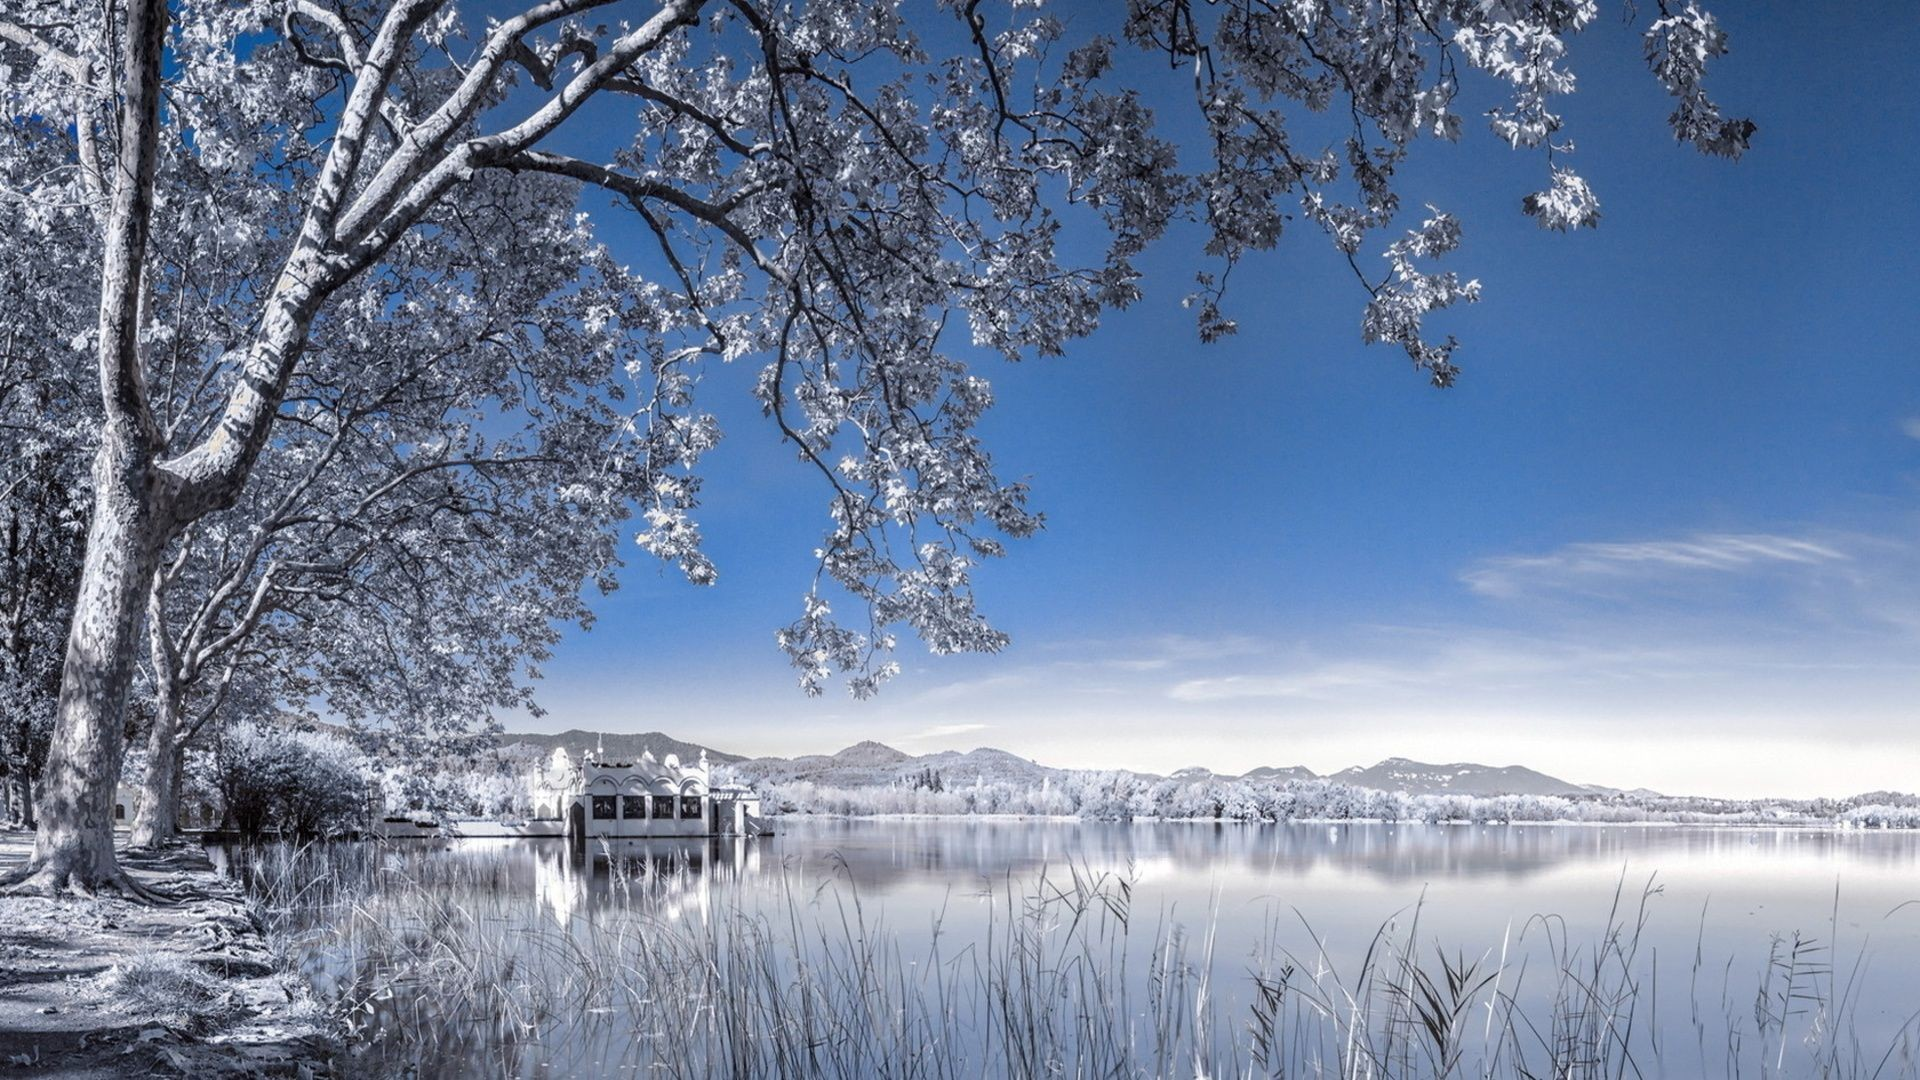 Res: 1920x1080, Winter Backgrounds for Desktop | Wallpapers, Backgrounds, Images .